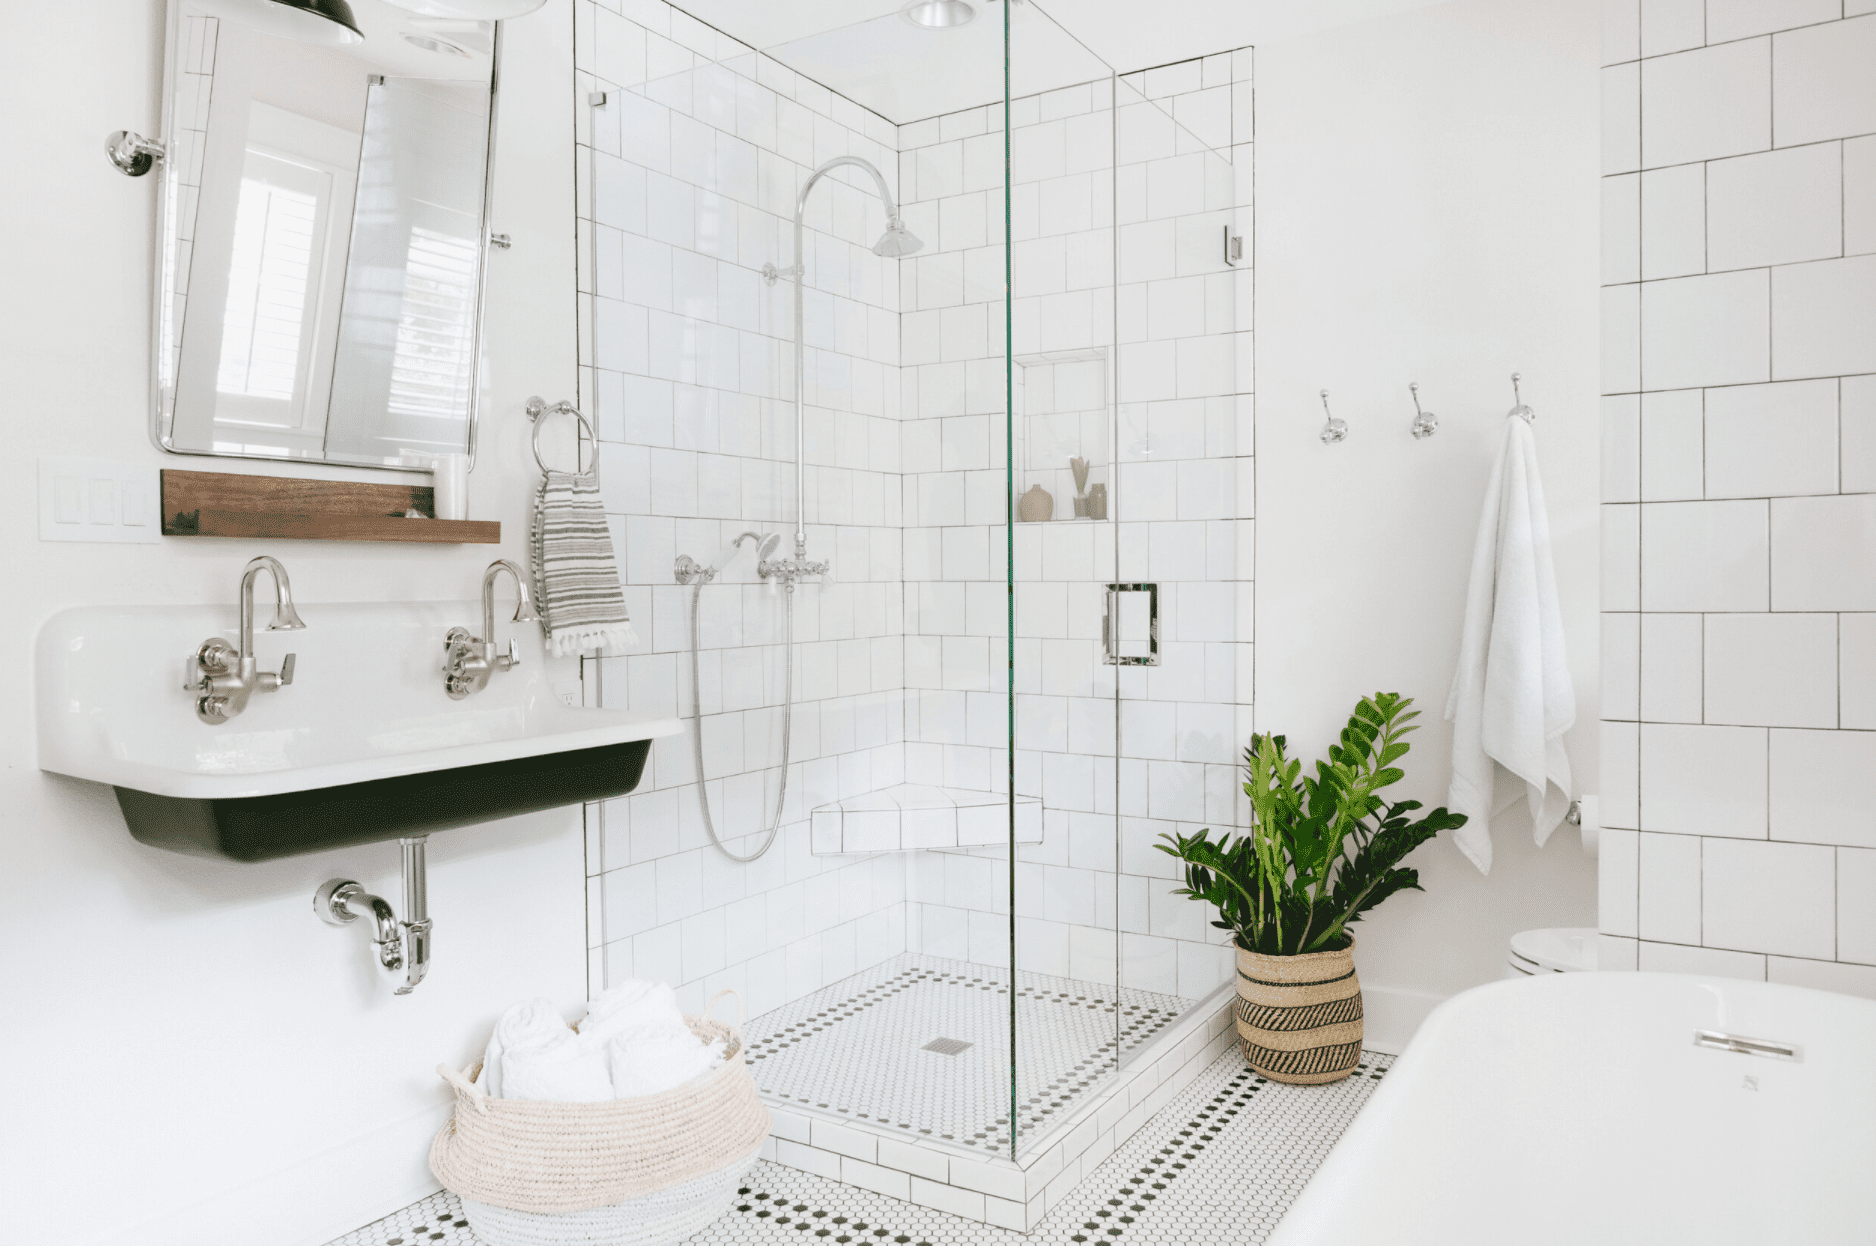 An all-white bathroom with a double sink